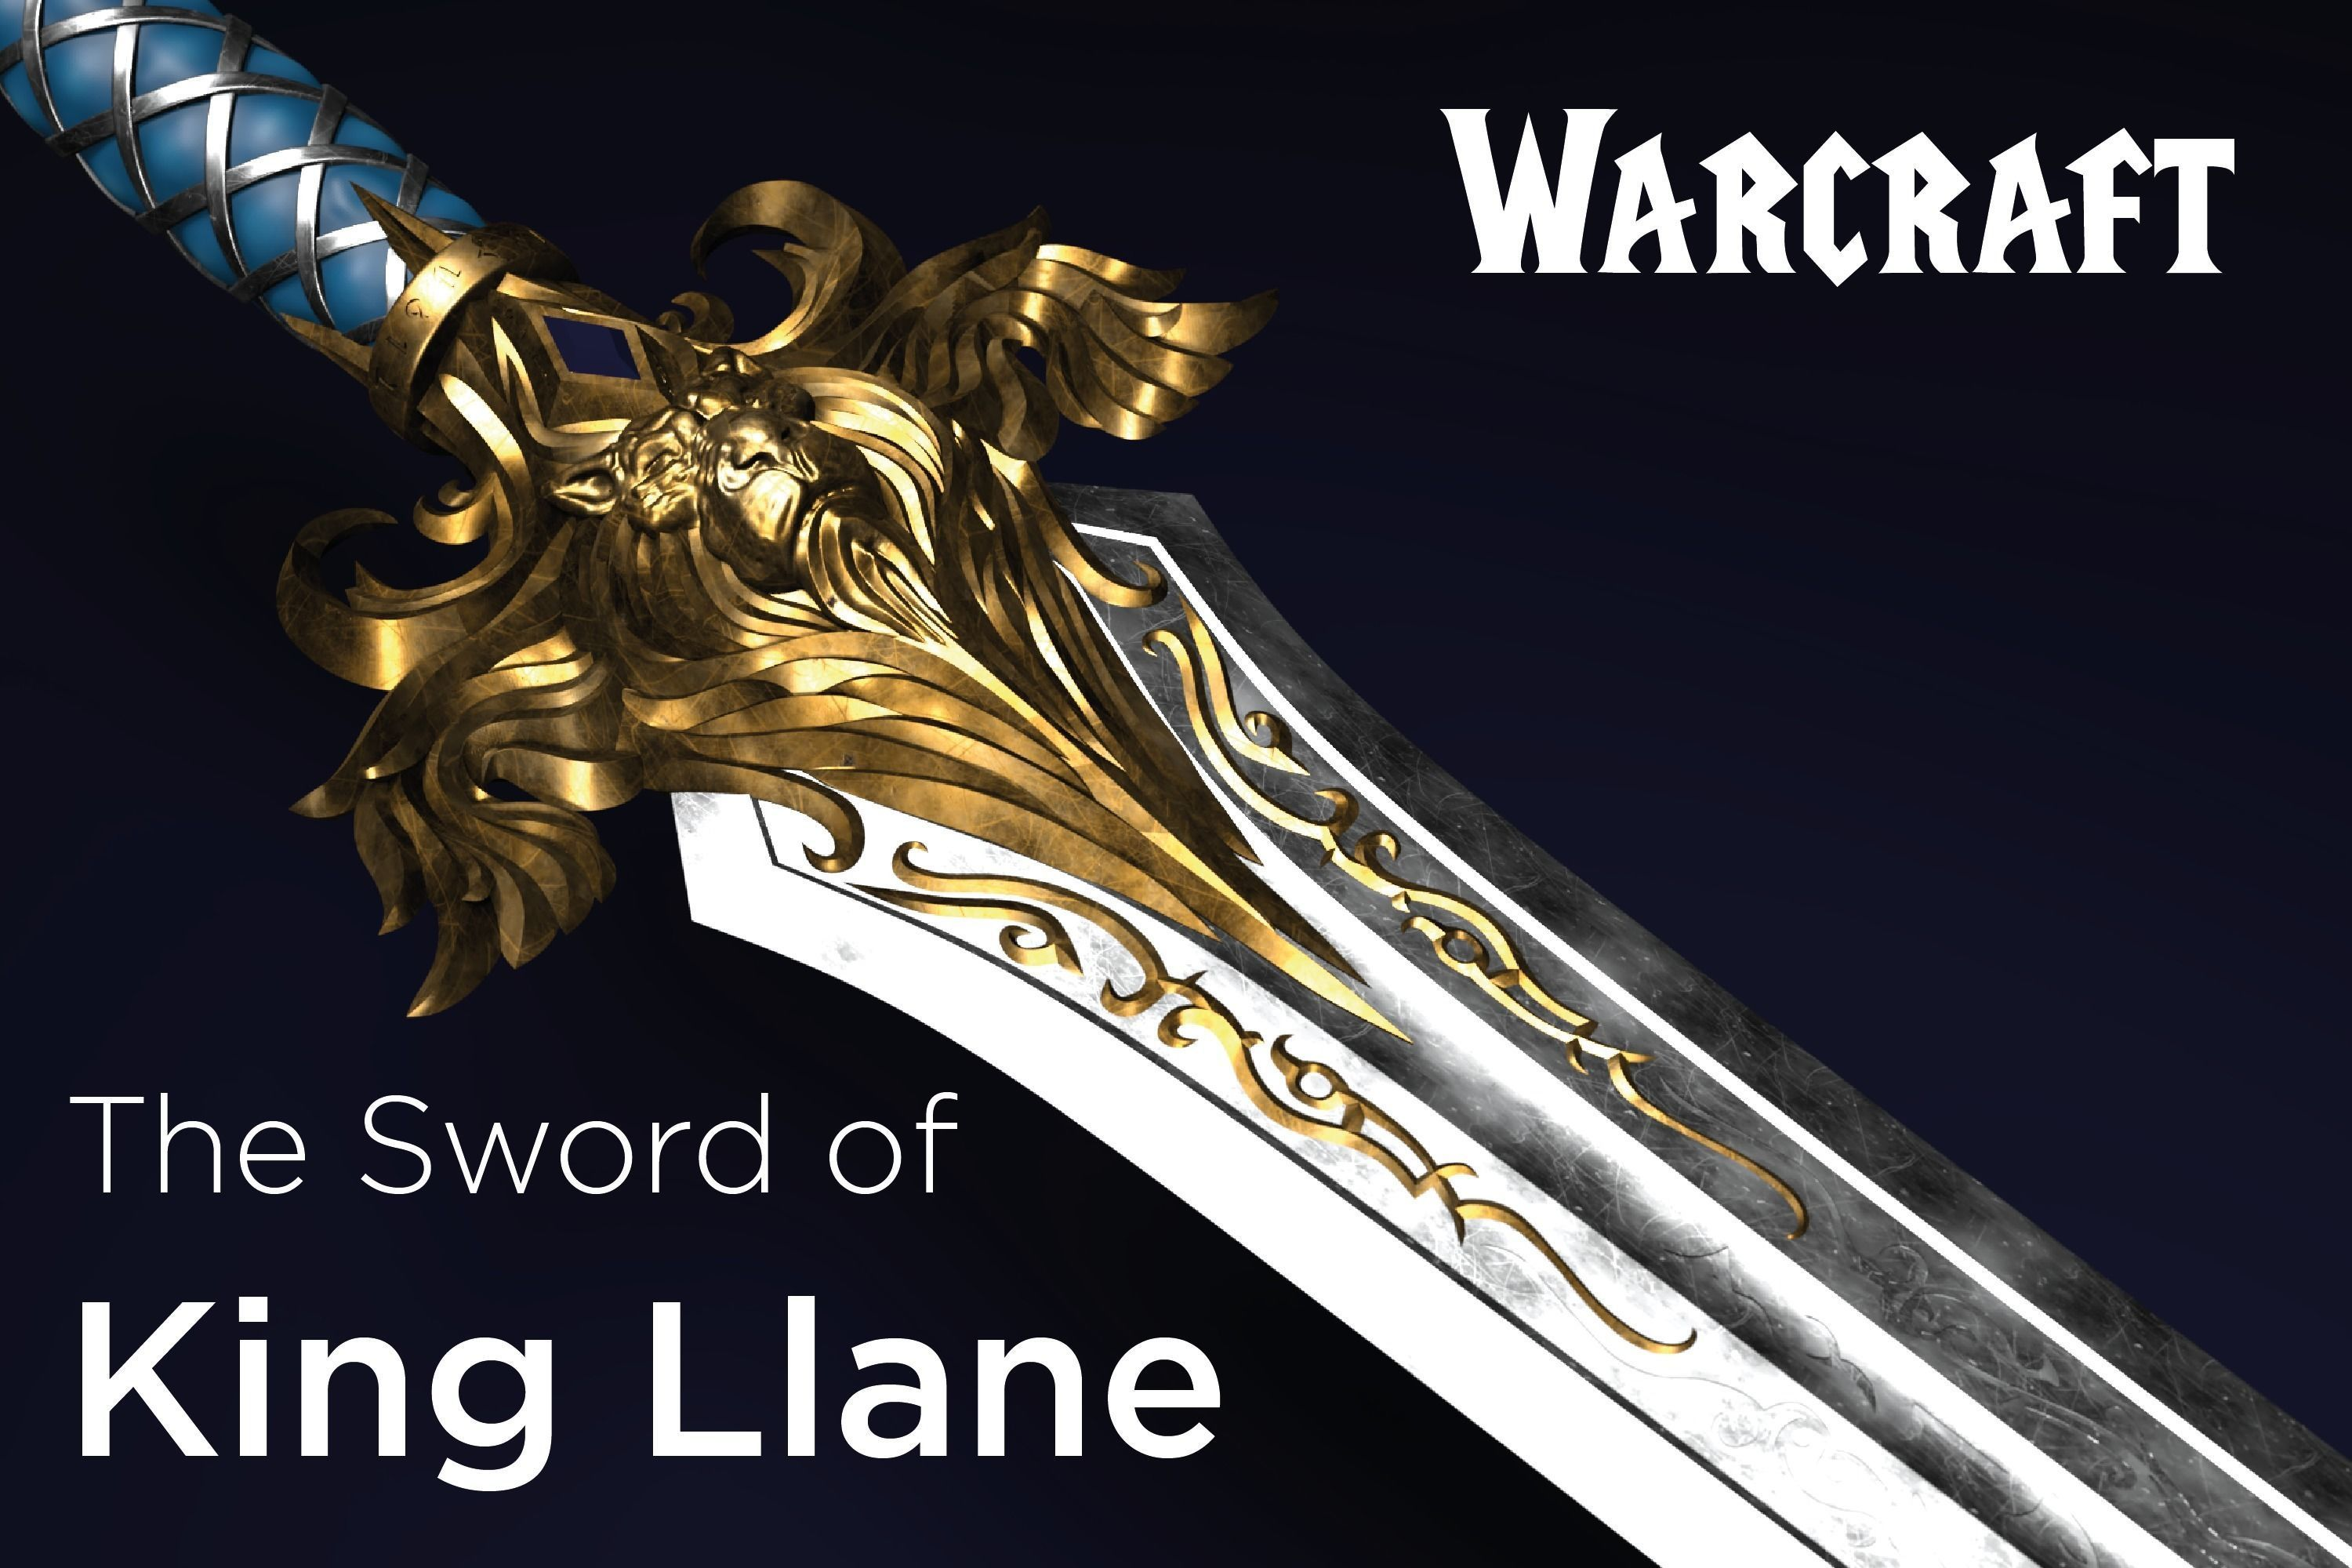 The Sword of King Llane from Warcraft movie